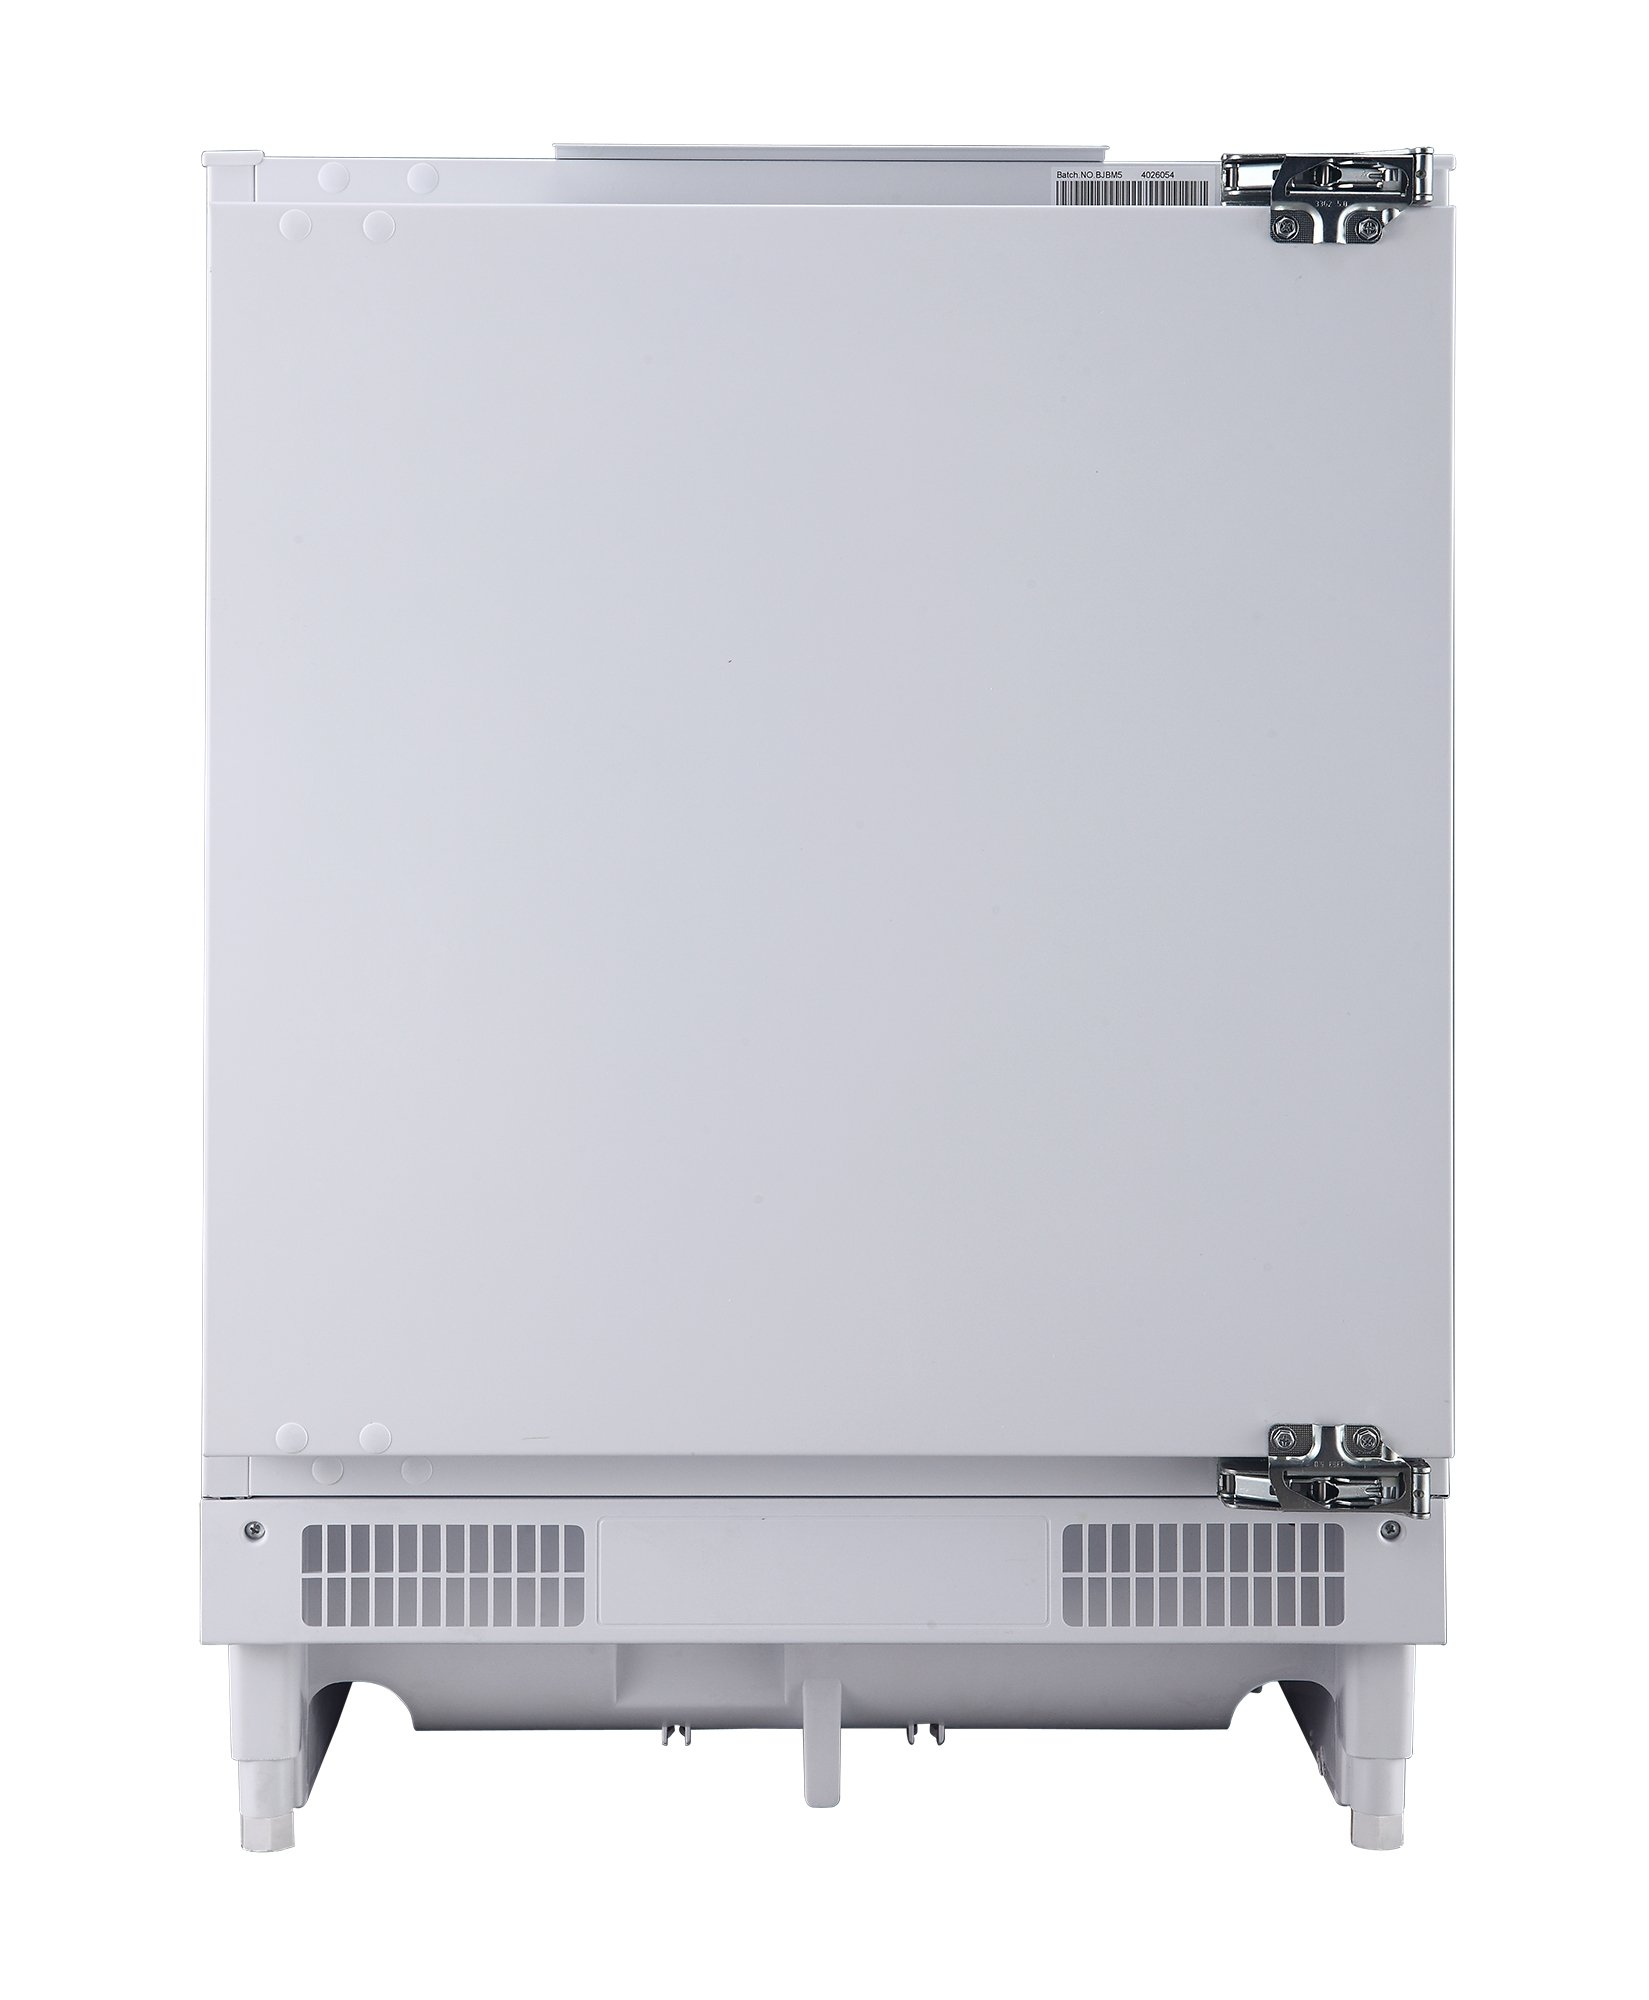 71oUVG3iPZL - Russell Hobbs Integrated 60cm Wide White Larder Fridge, A+ Energy, RHBU60LARDER - Free 2 Year Guarantee*